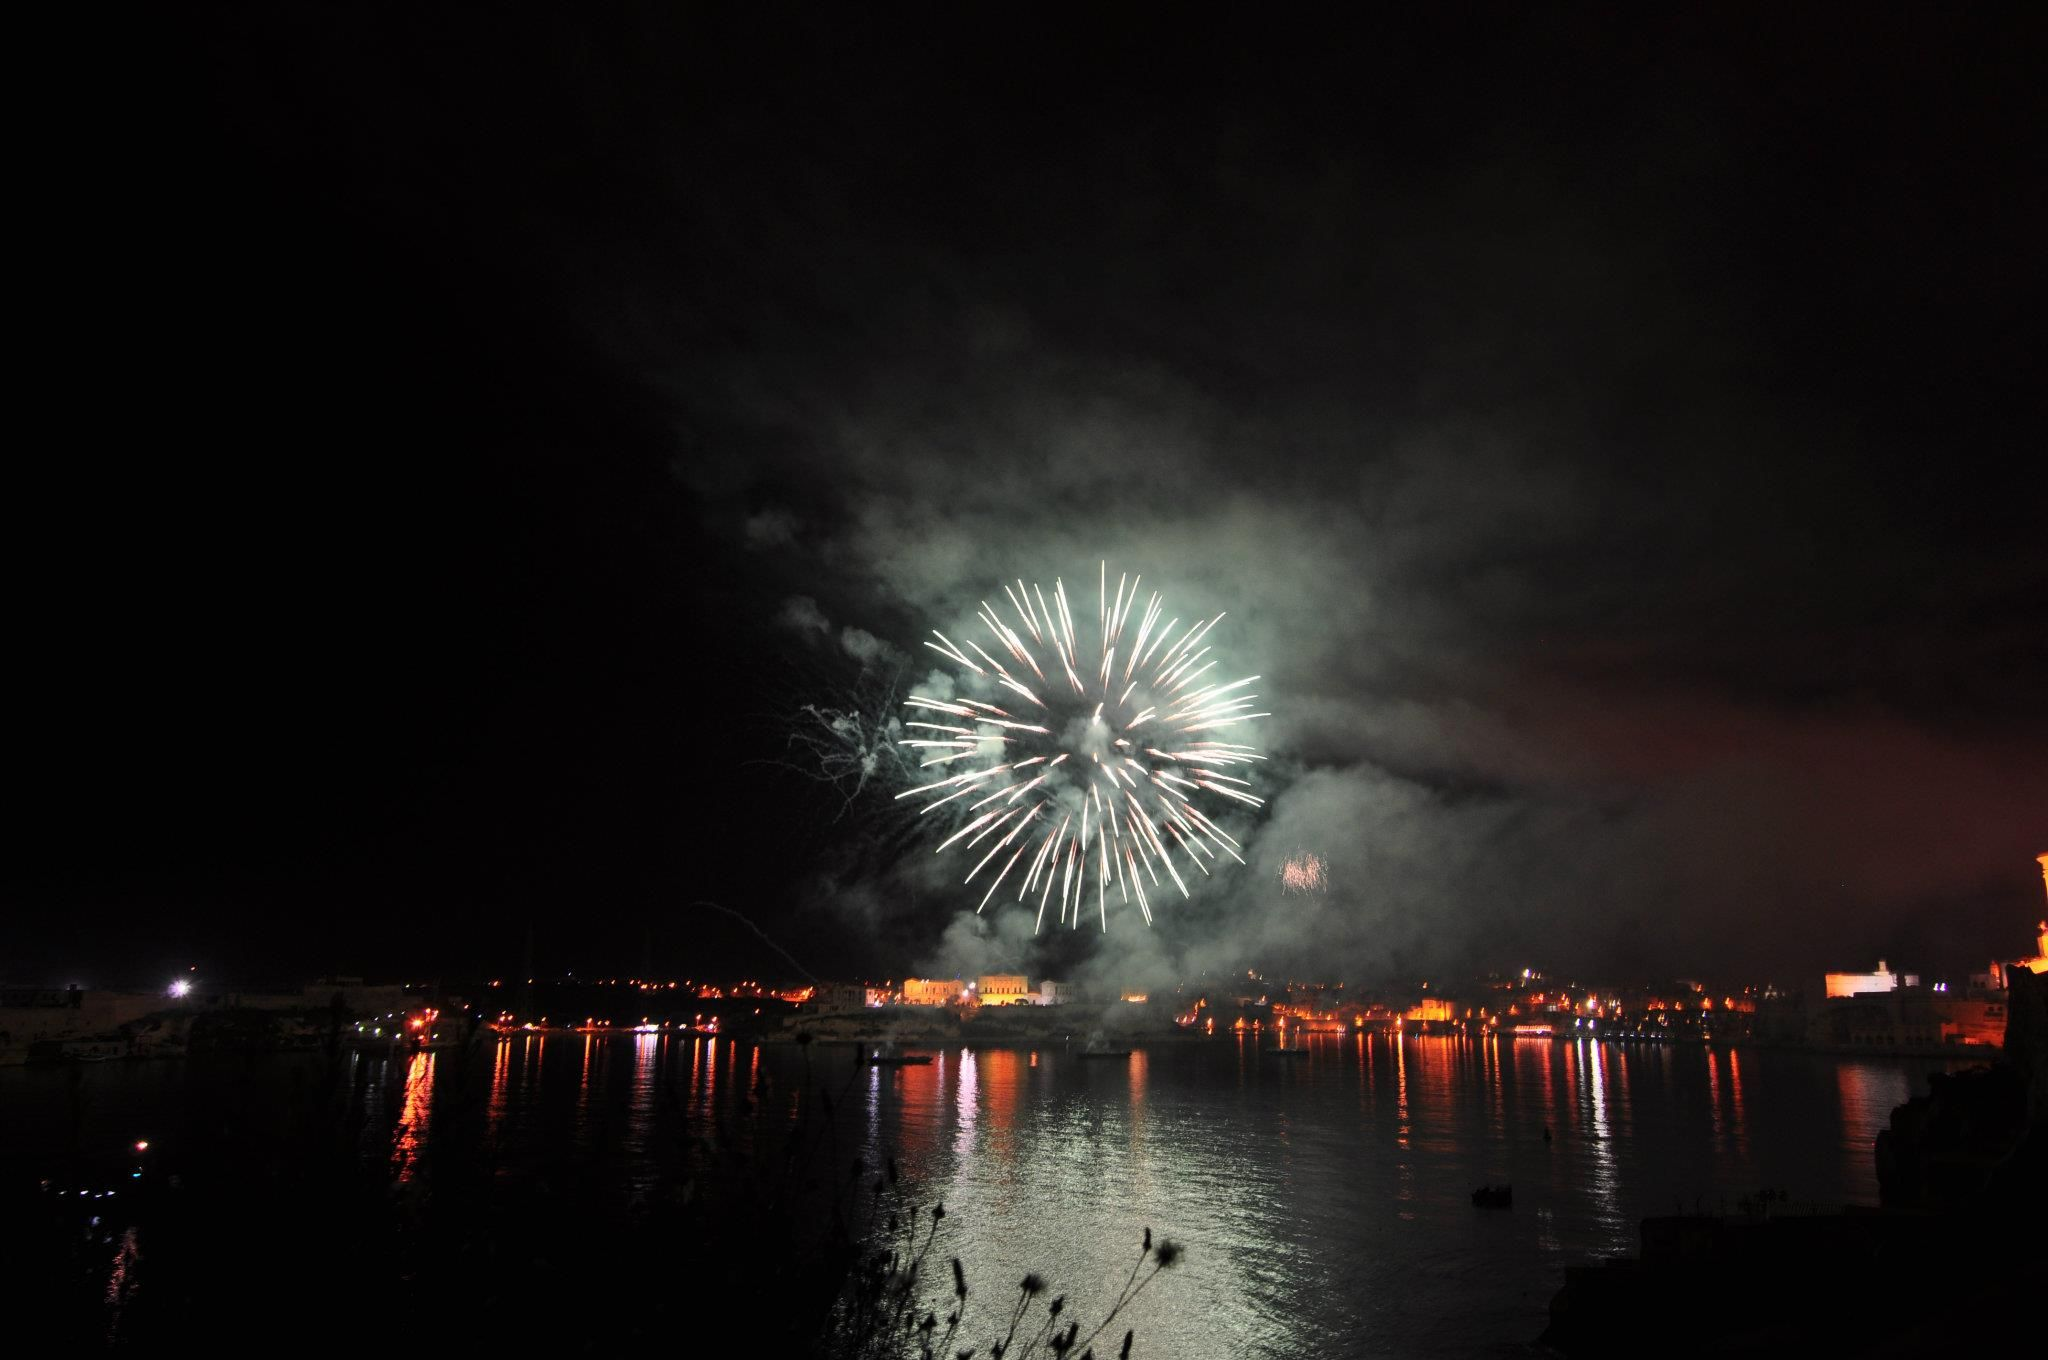 Pyromusical display by Phoenix Fireworks of the UK. — at